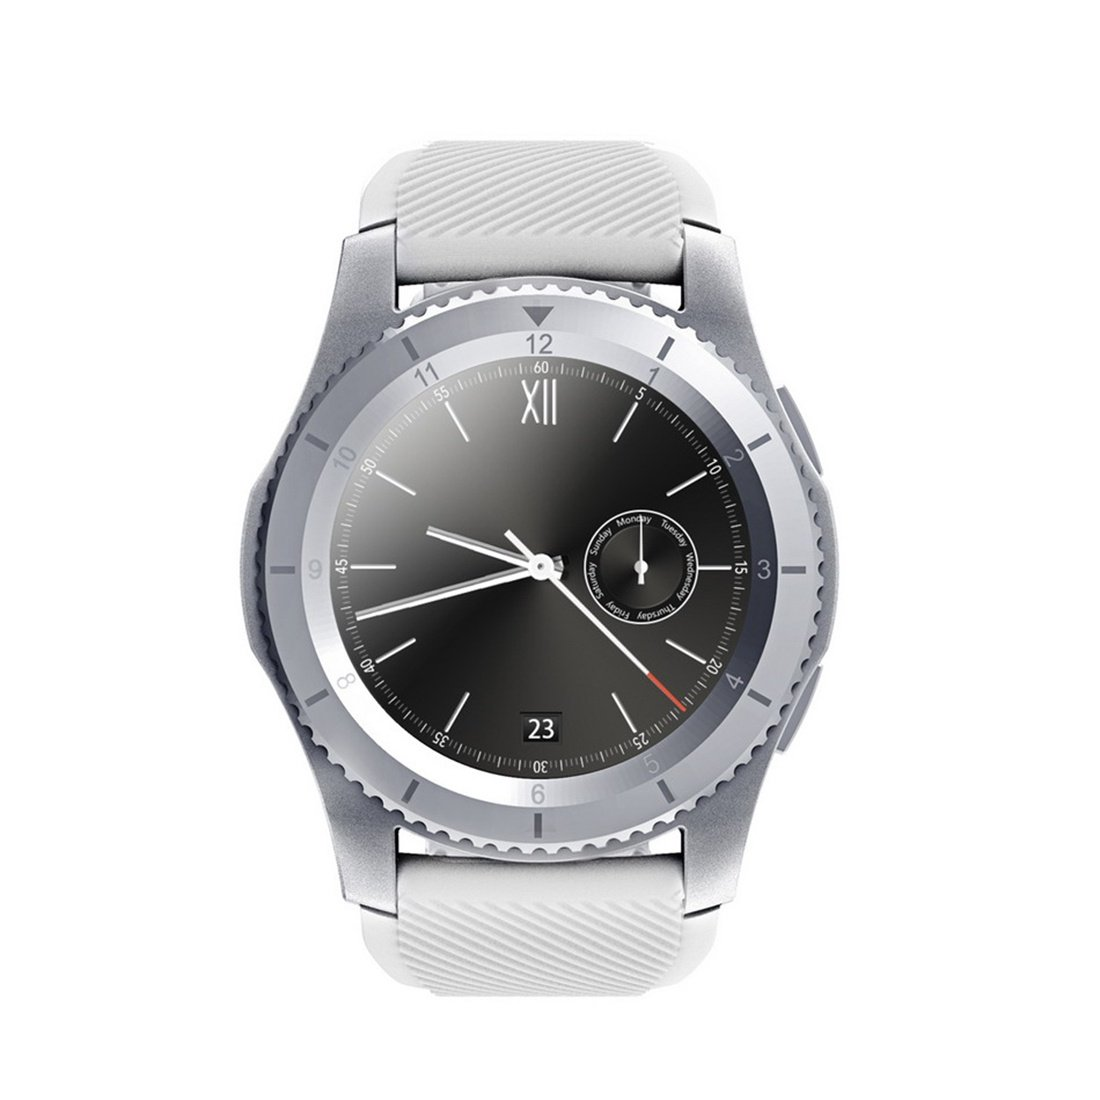 G8 Smartwatch Bluetooth 4.0 SIM Call Message Reminder Heart Rate Monitor Smart watchs For Android IOS, Silver